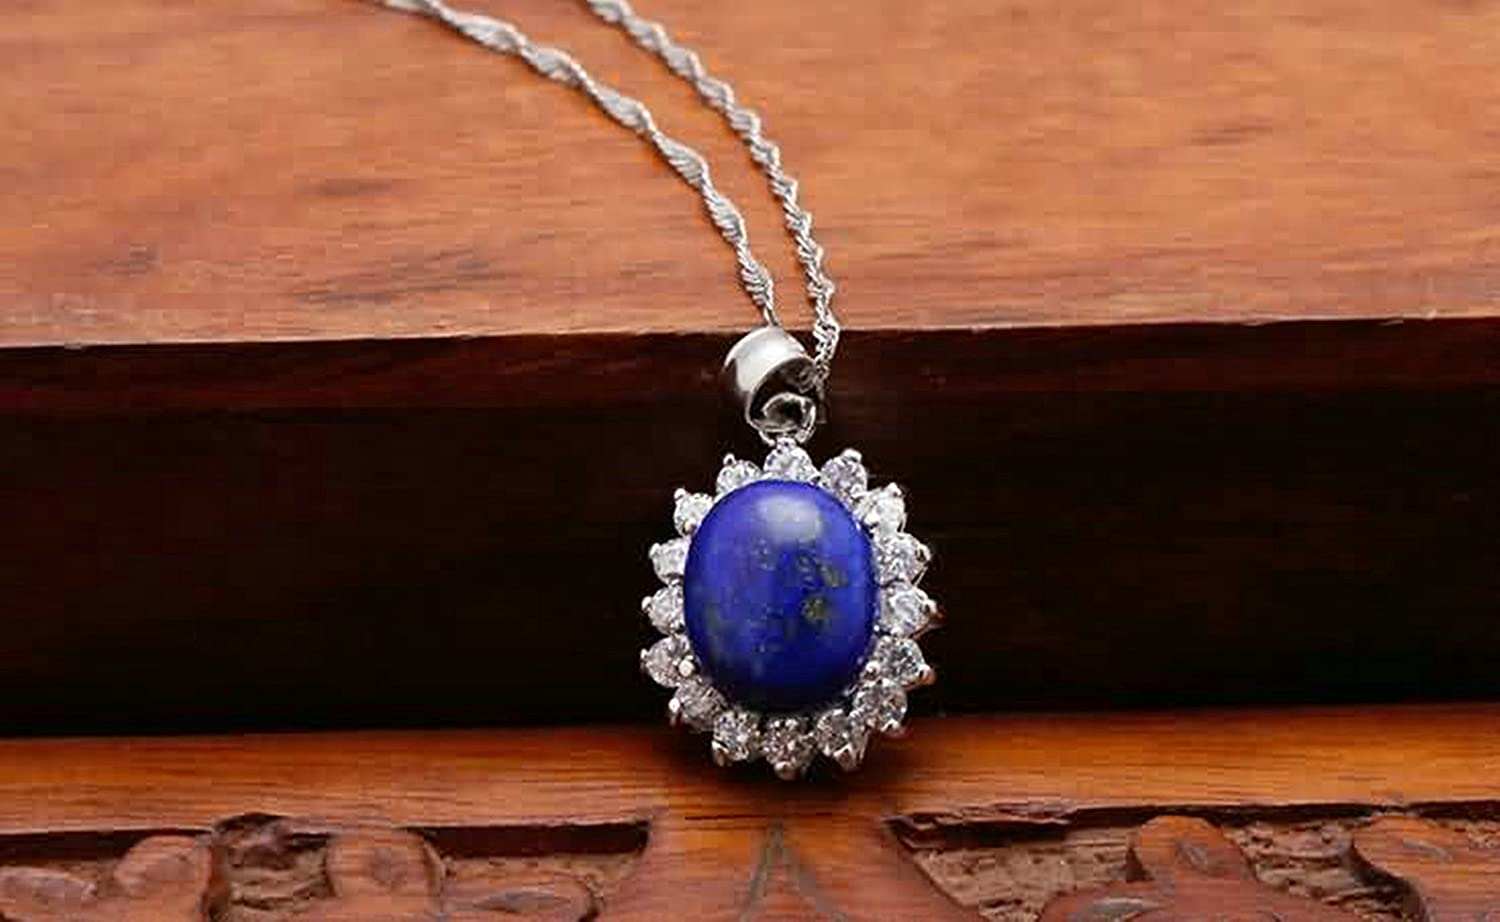 AMDXD Jewelry Sterling Silver Pendant Necklaces for Women Sunflower Cubic Zirconia Blue 1.6X1.4CM